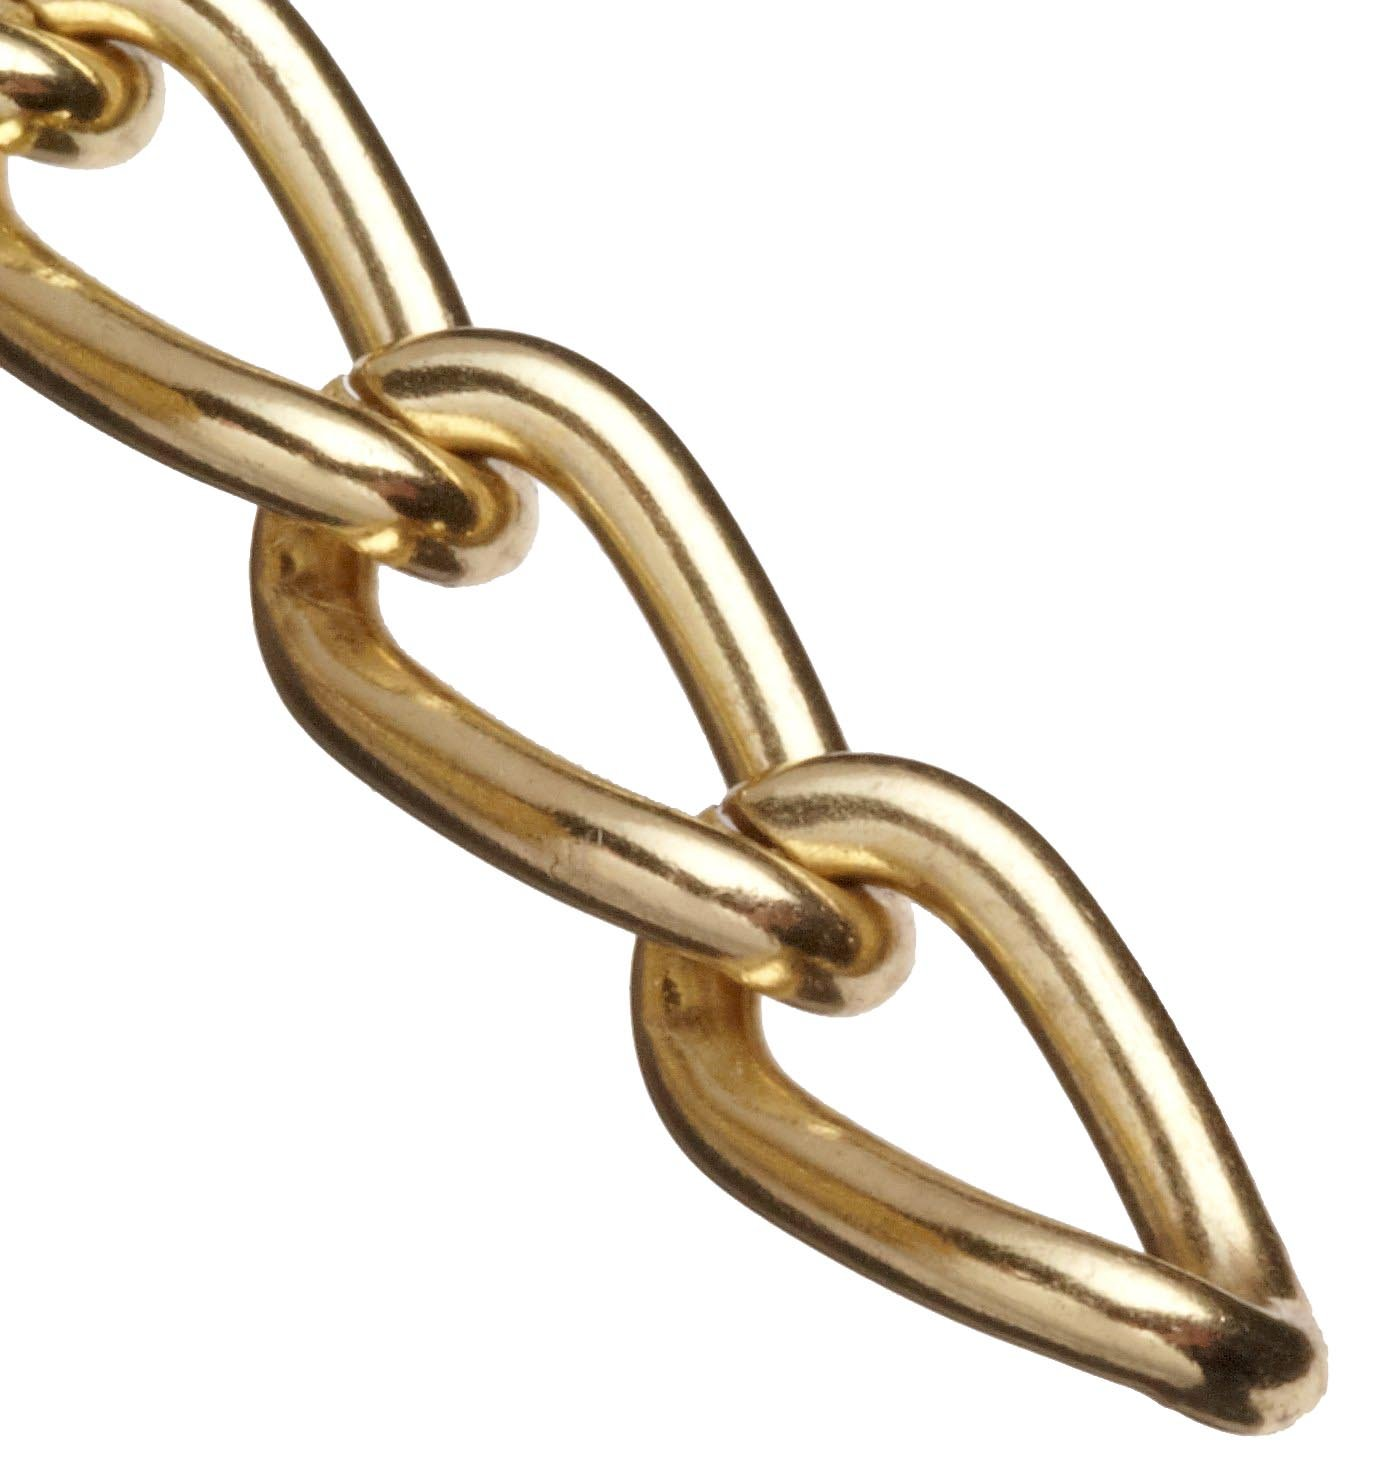 Campbell 0712017 Hobby and Craft Twist Chain, Brass Plated, #200 Trade, 0.079'' Diameter, 12 lbs Load Capacity, 49 Feet Mini Reel by Apex Tool Group